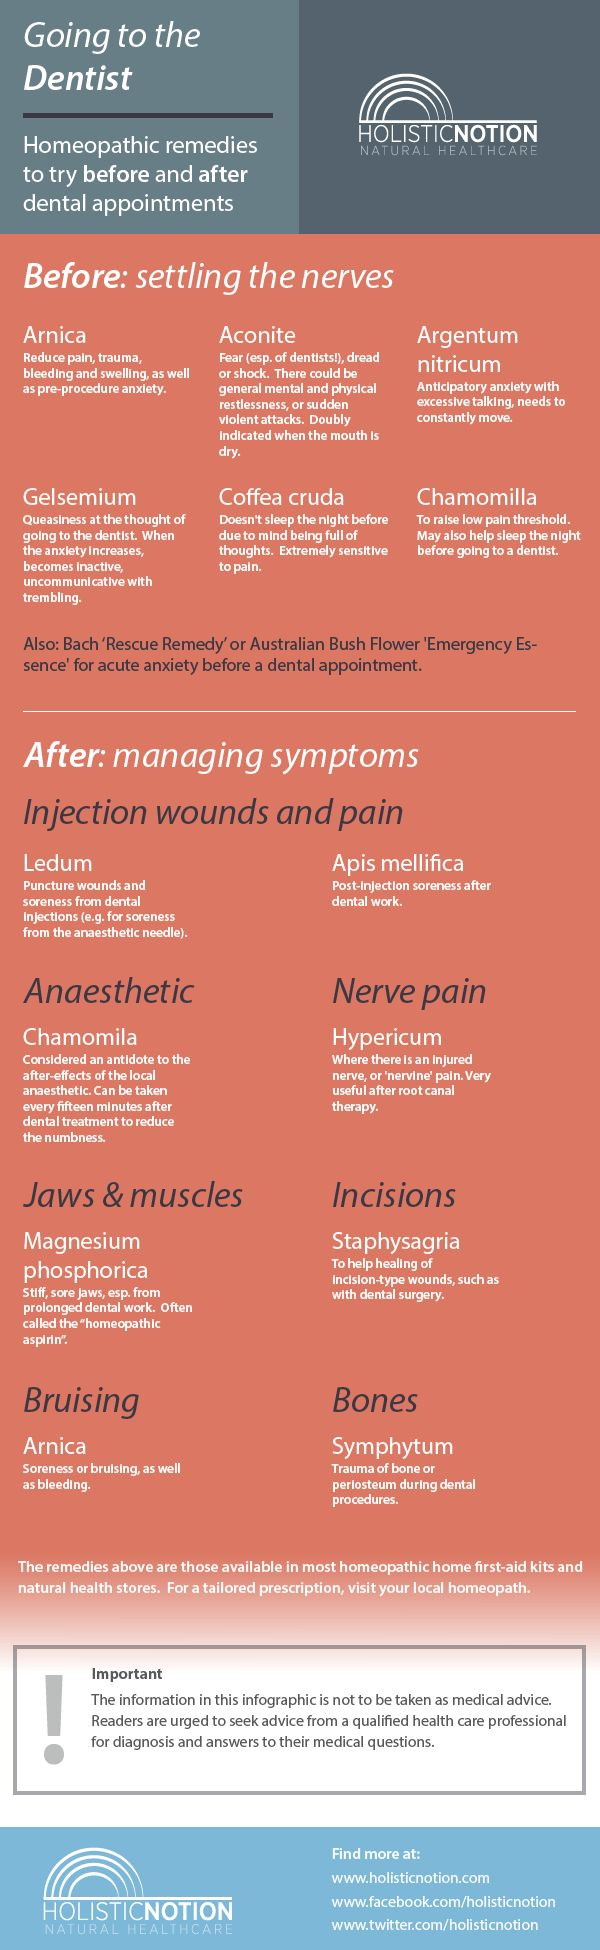 Infographic of useful remedies for before and after dental treatment.